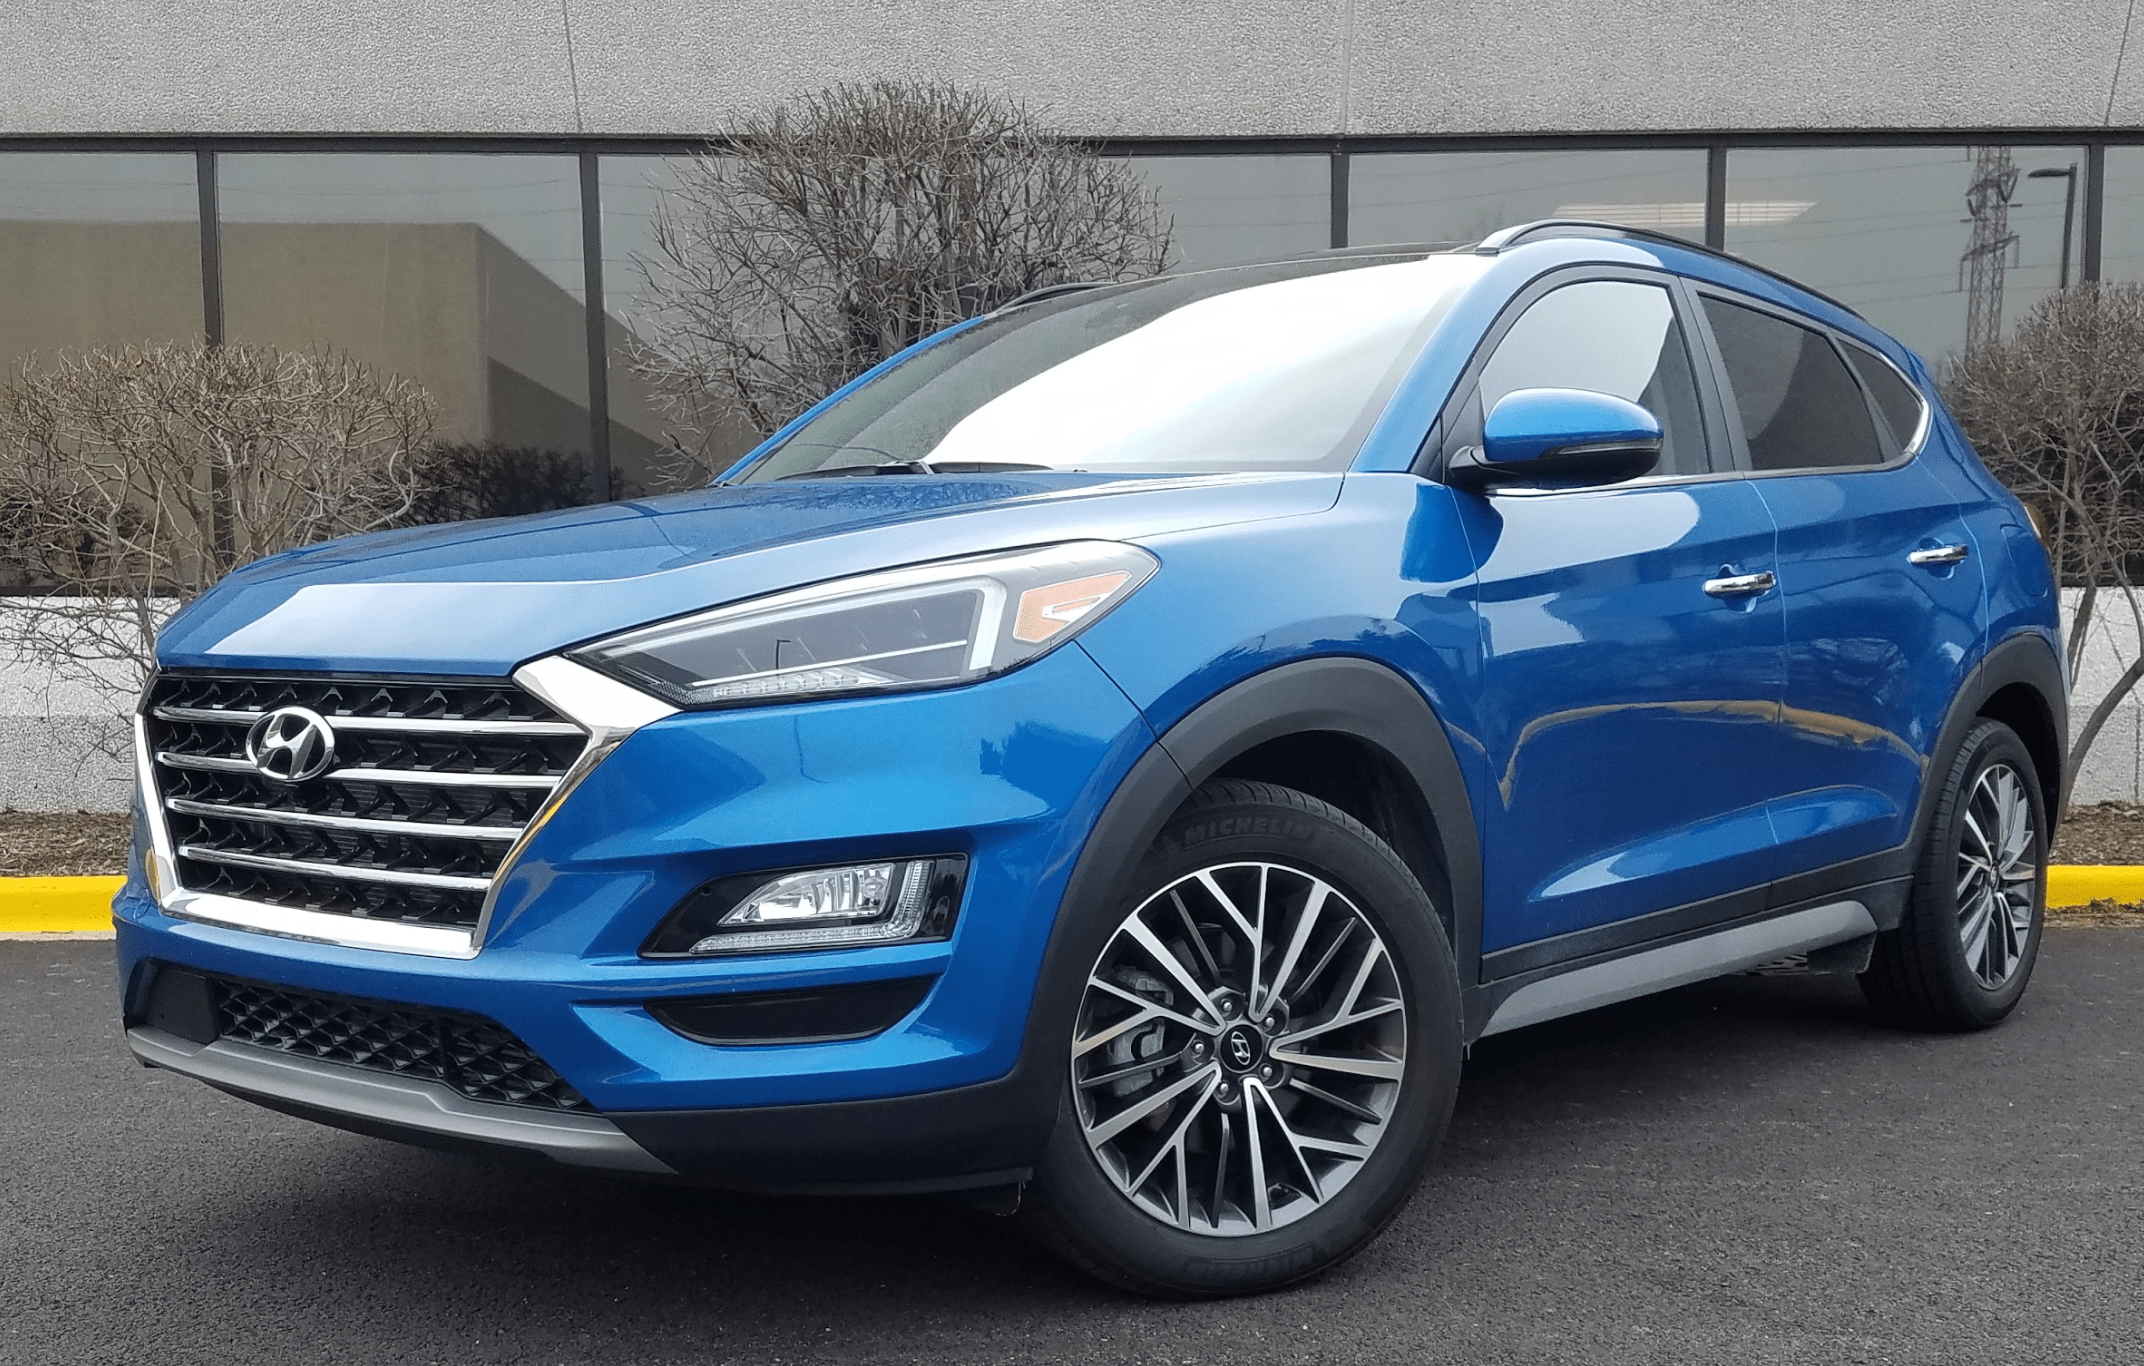 Plus a new interior with more advanced features and technology. 2019 Hyundai Tucson Ultimate AWD The Daily Drive